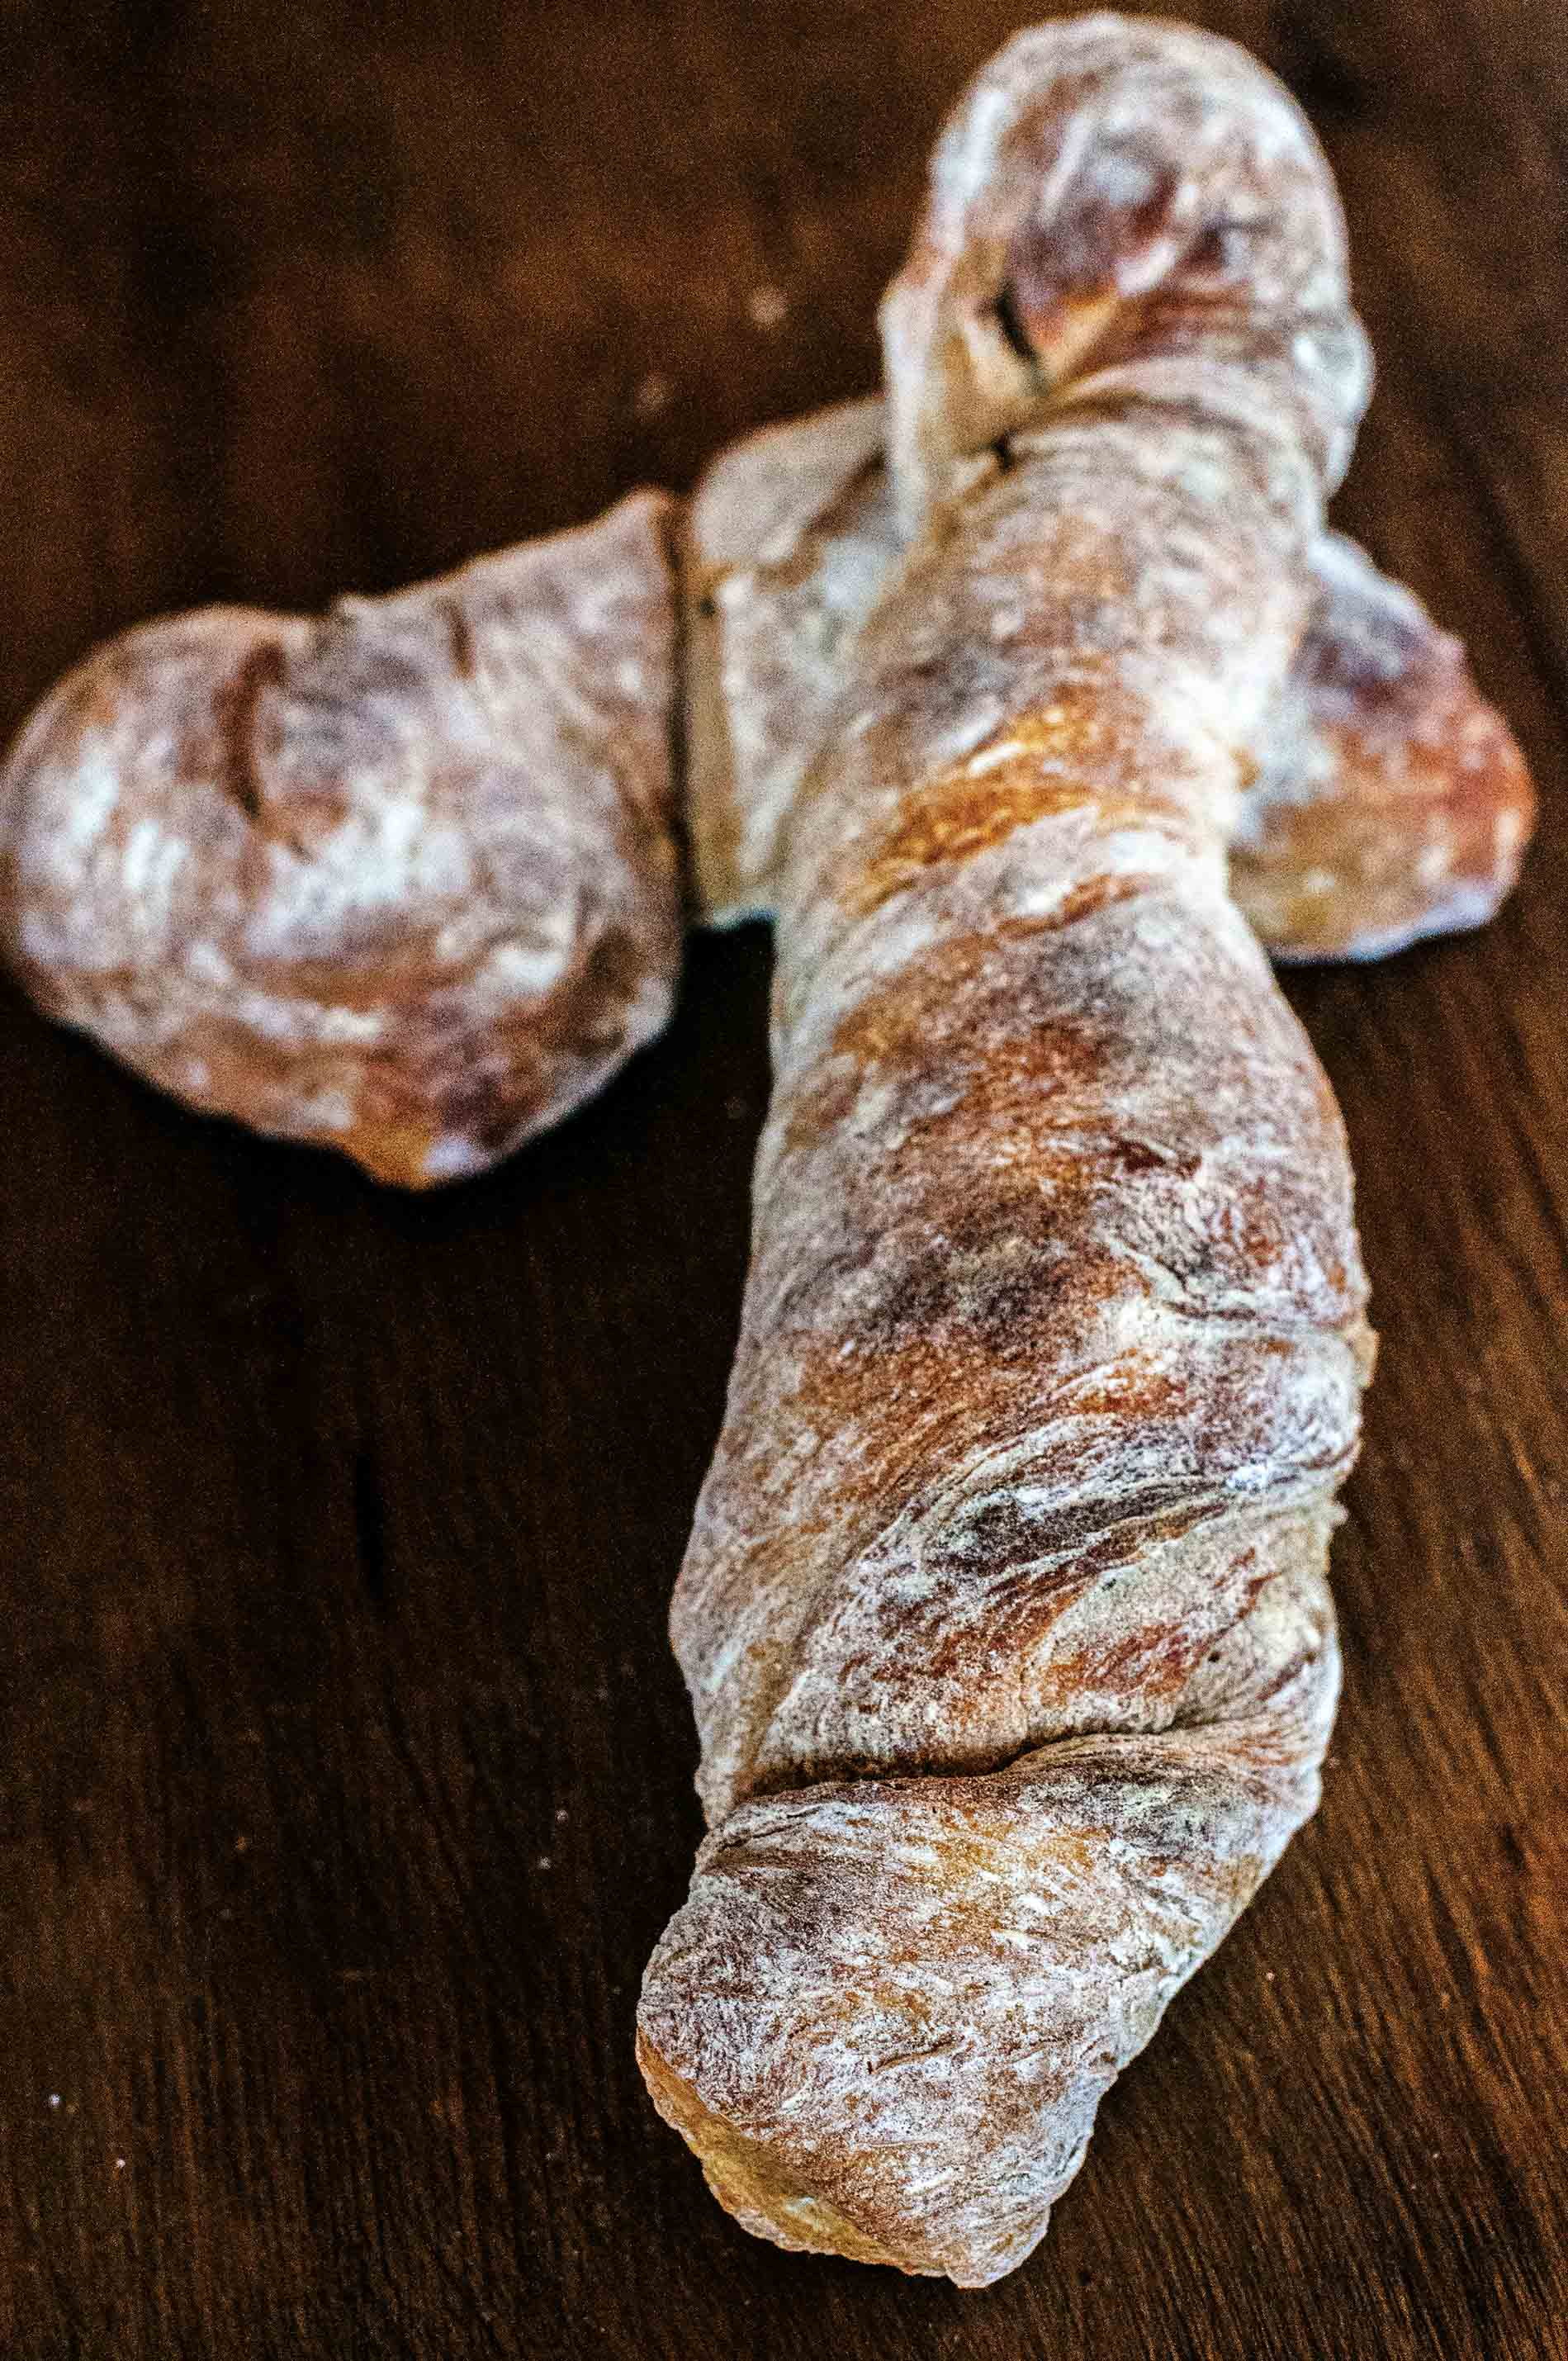 Twisted Sourdough Baguette